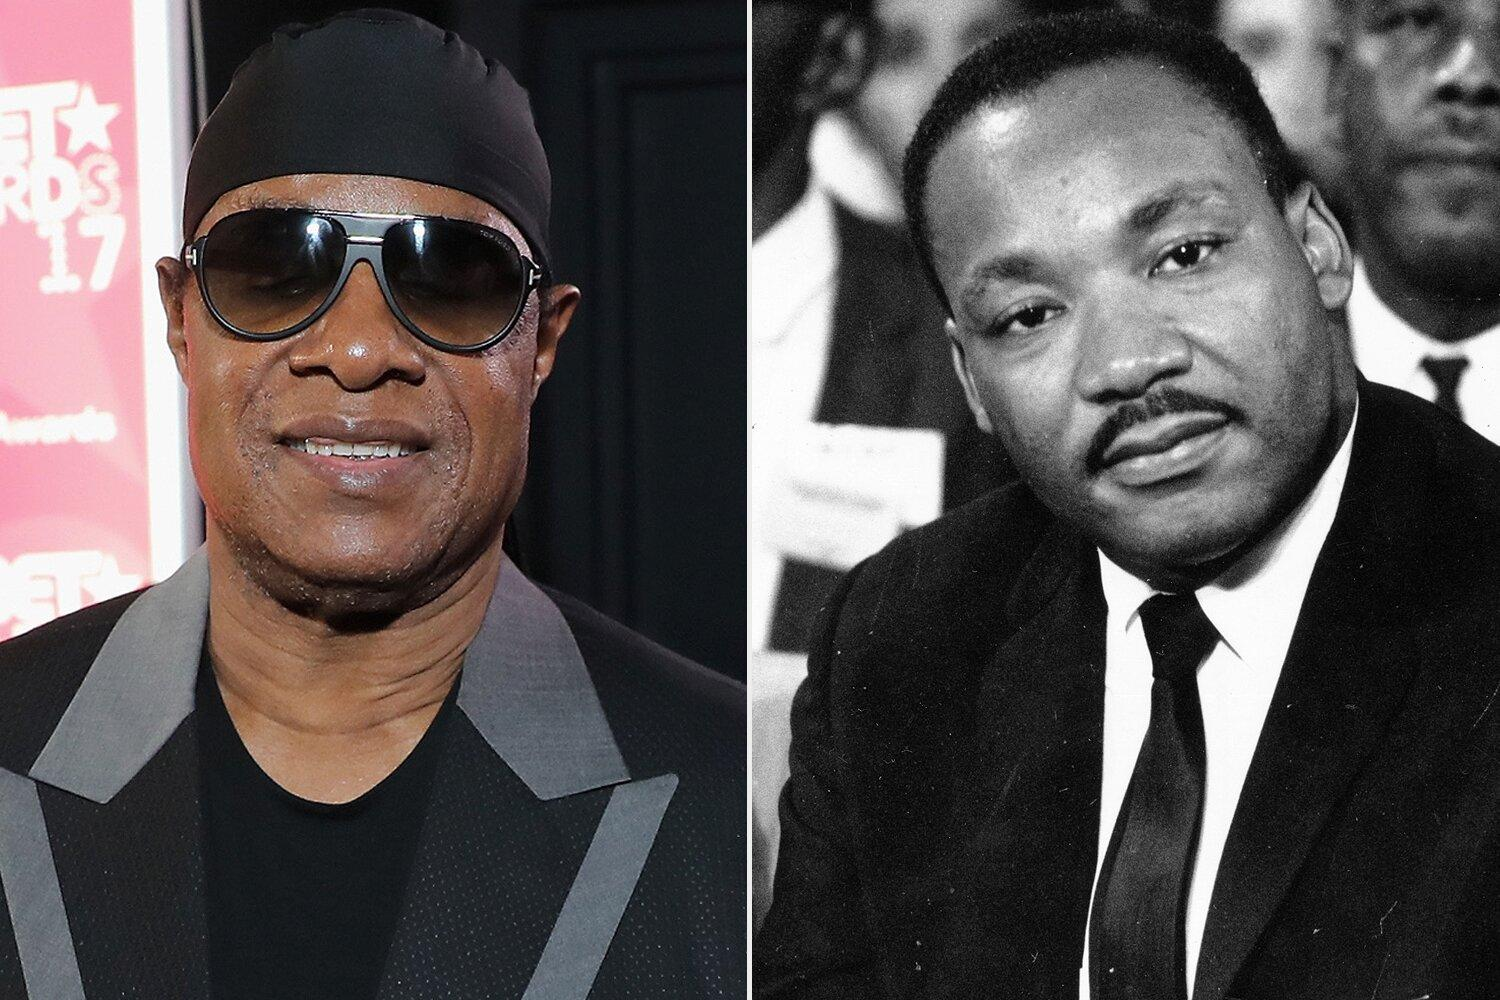 Stevie Wonder Pens Letter to Martin Luther King Jr. Criticizing 'Lack of Progress' in Equality